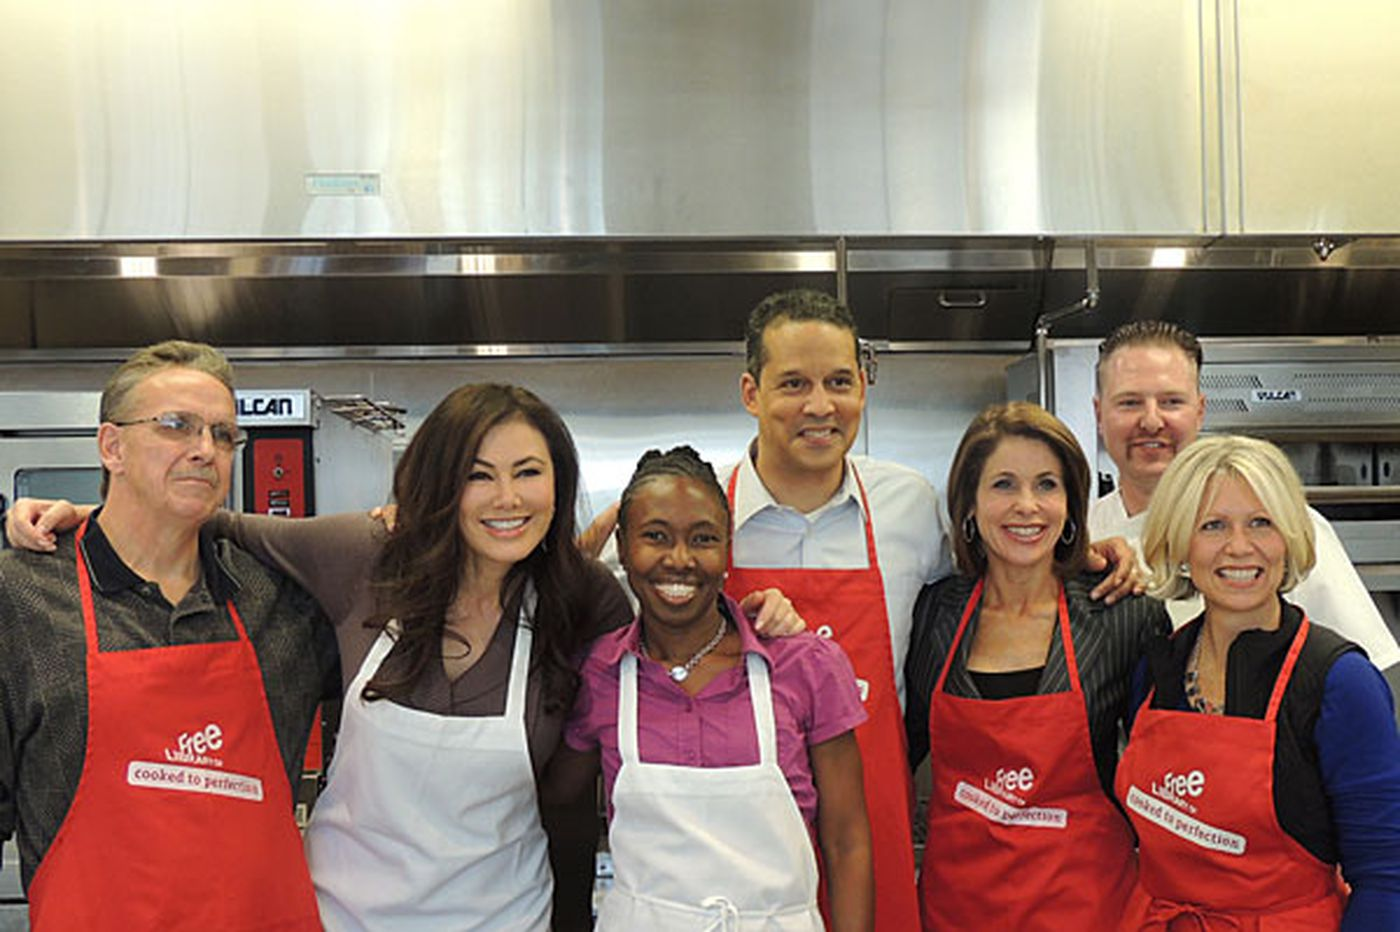 Anchors cook up a storm to ward off cancer